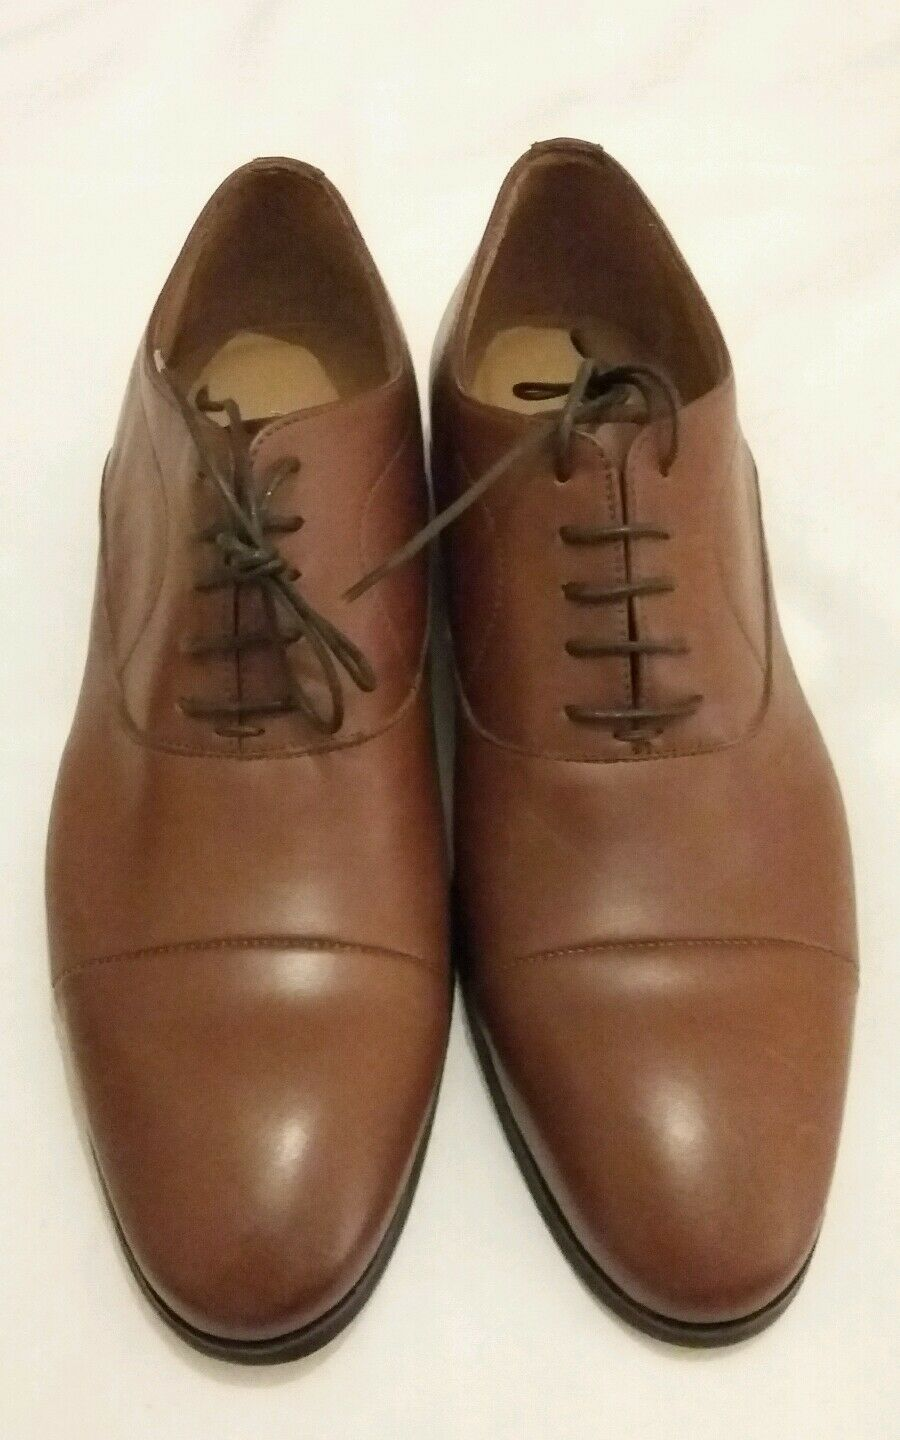 Paolo Sartori Marrone in Pelle Oxford Lace-Up Formale Scarpa EU 42 MADE IN ITALY